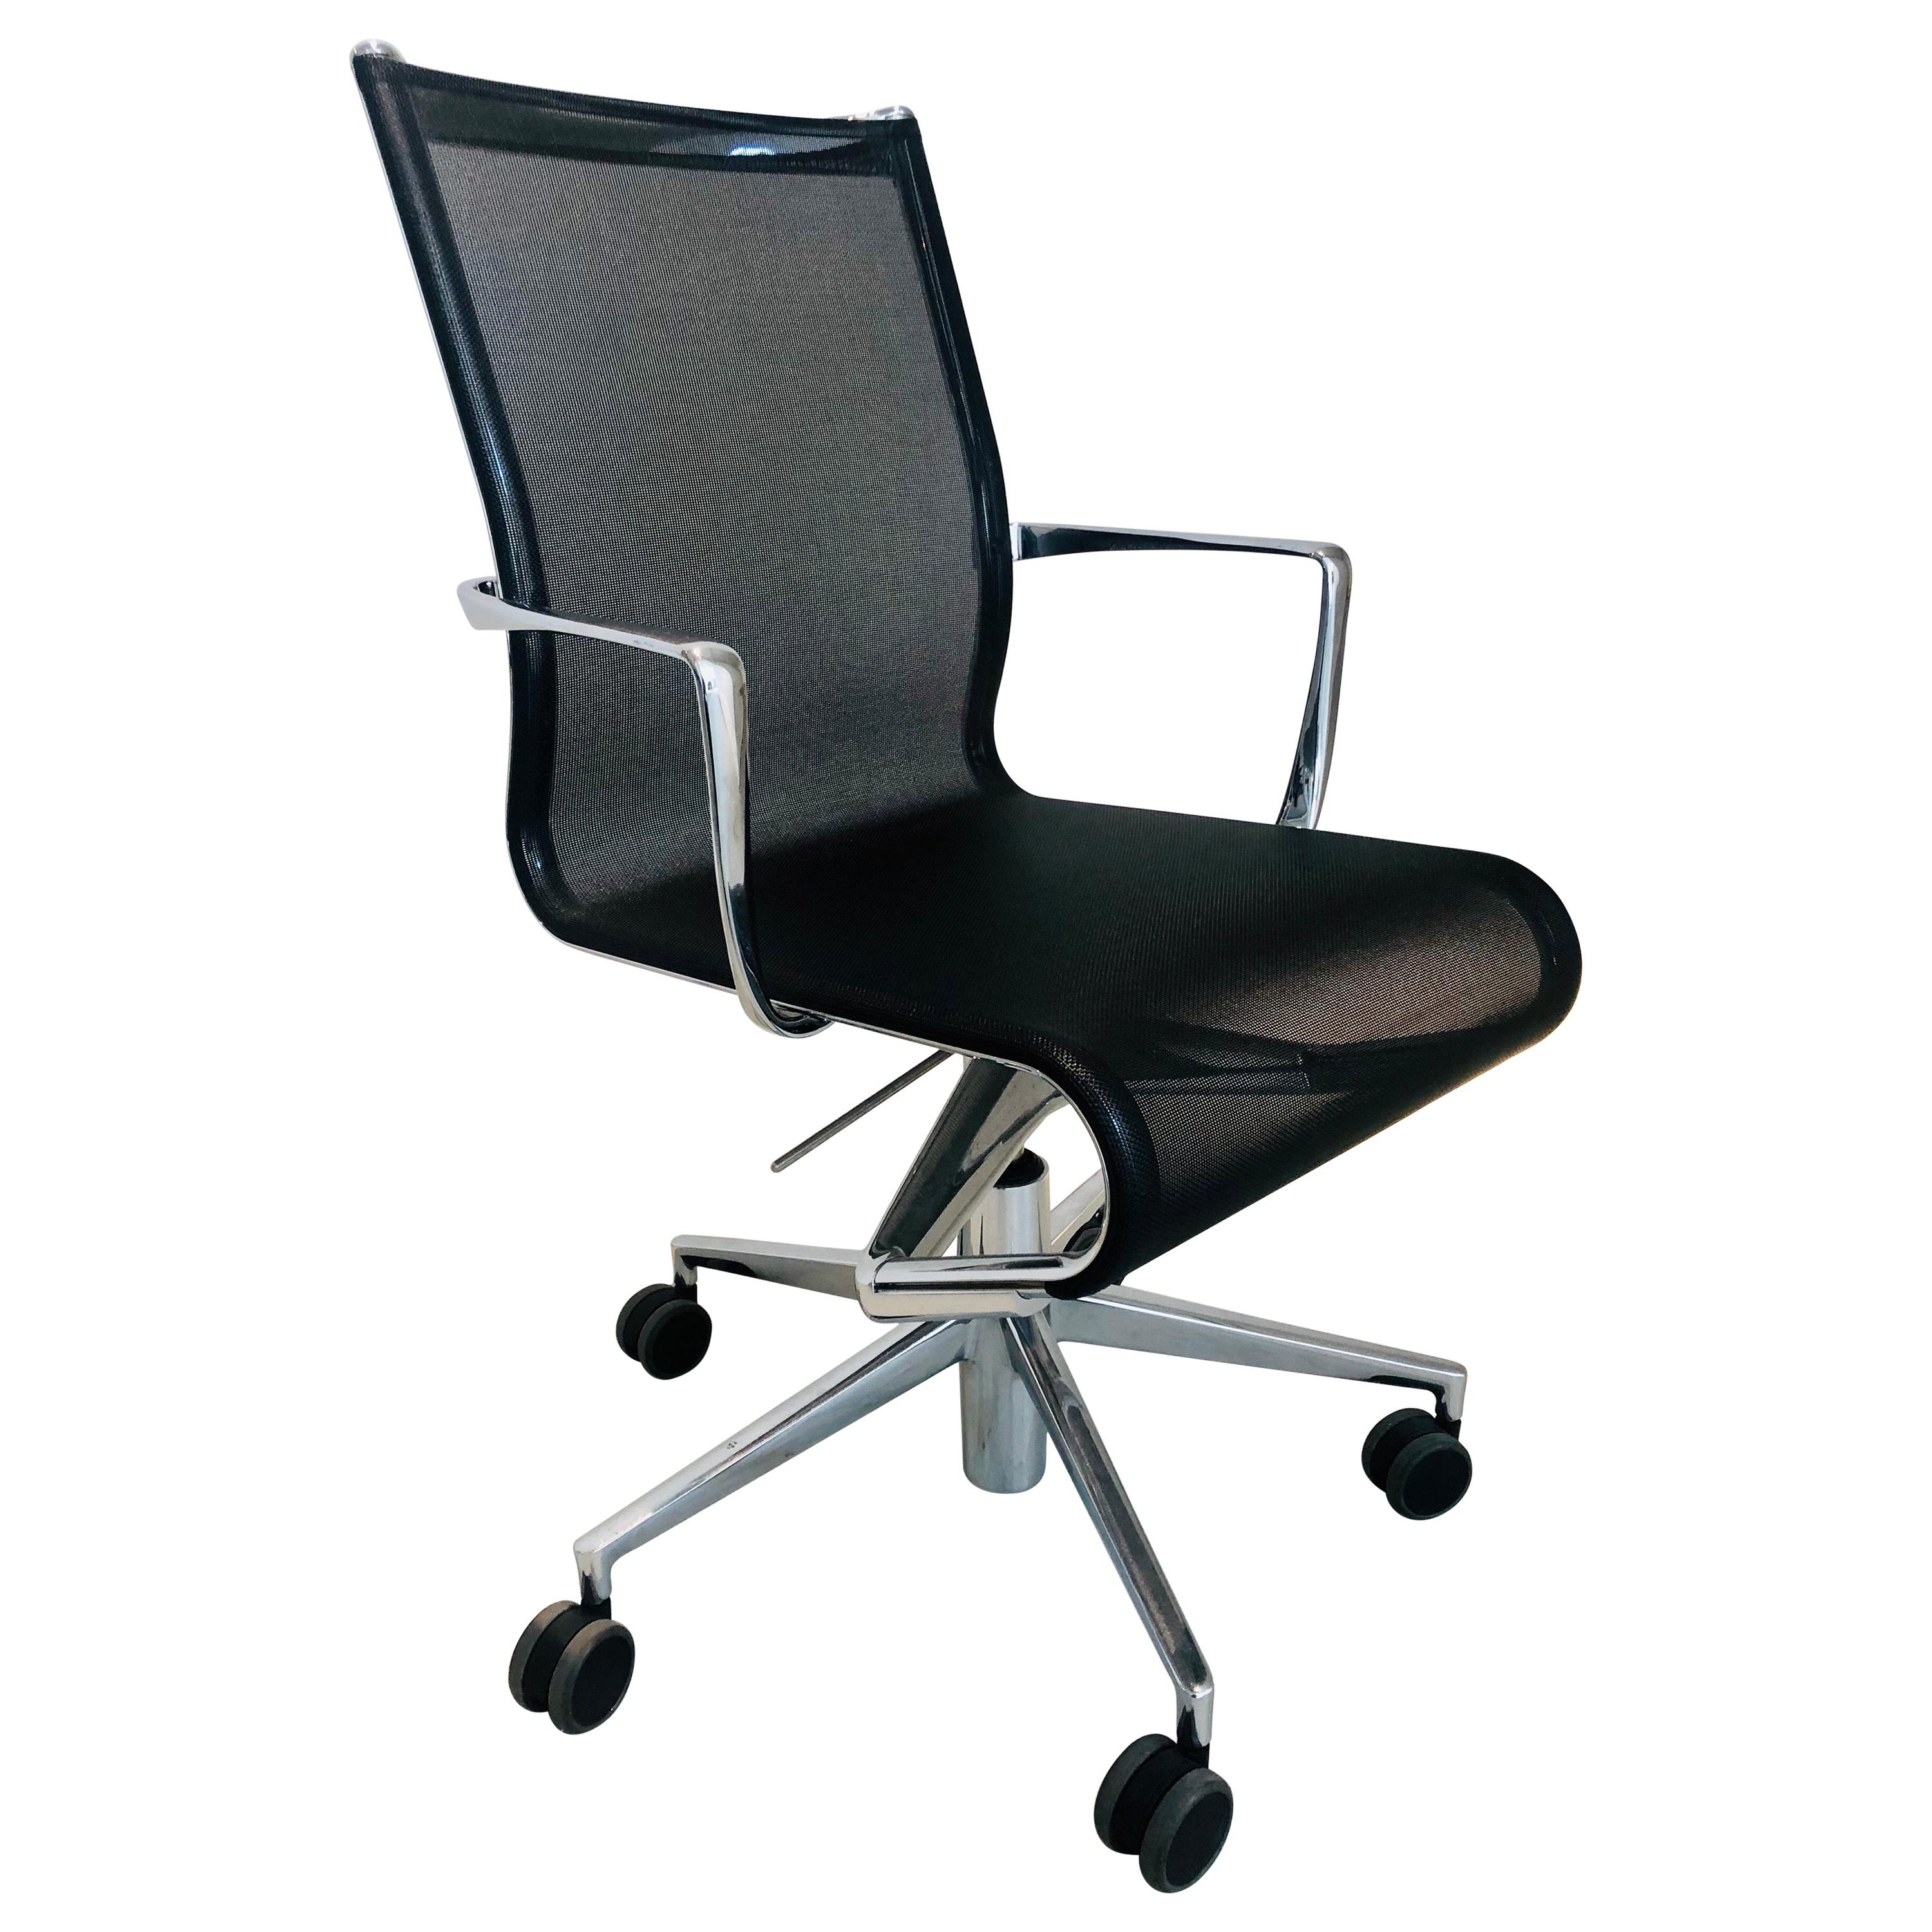 Modern Black Office Chair   Rolling Swivel With Arms By Alberto Meda   Alias